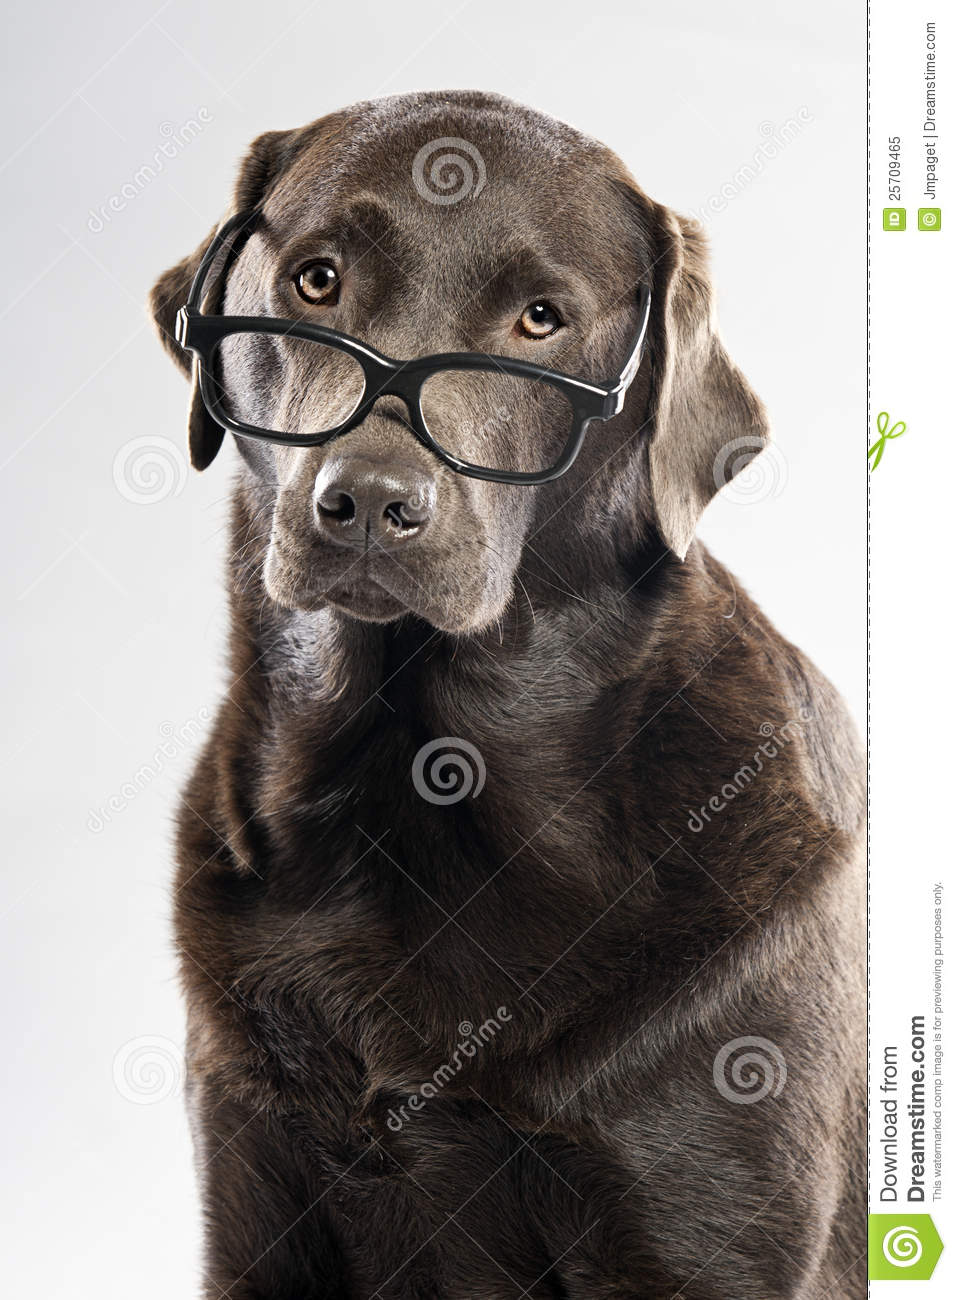 Chocolate Lab In Glasses Royalty Free Stock Photo - Image ...